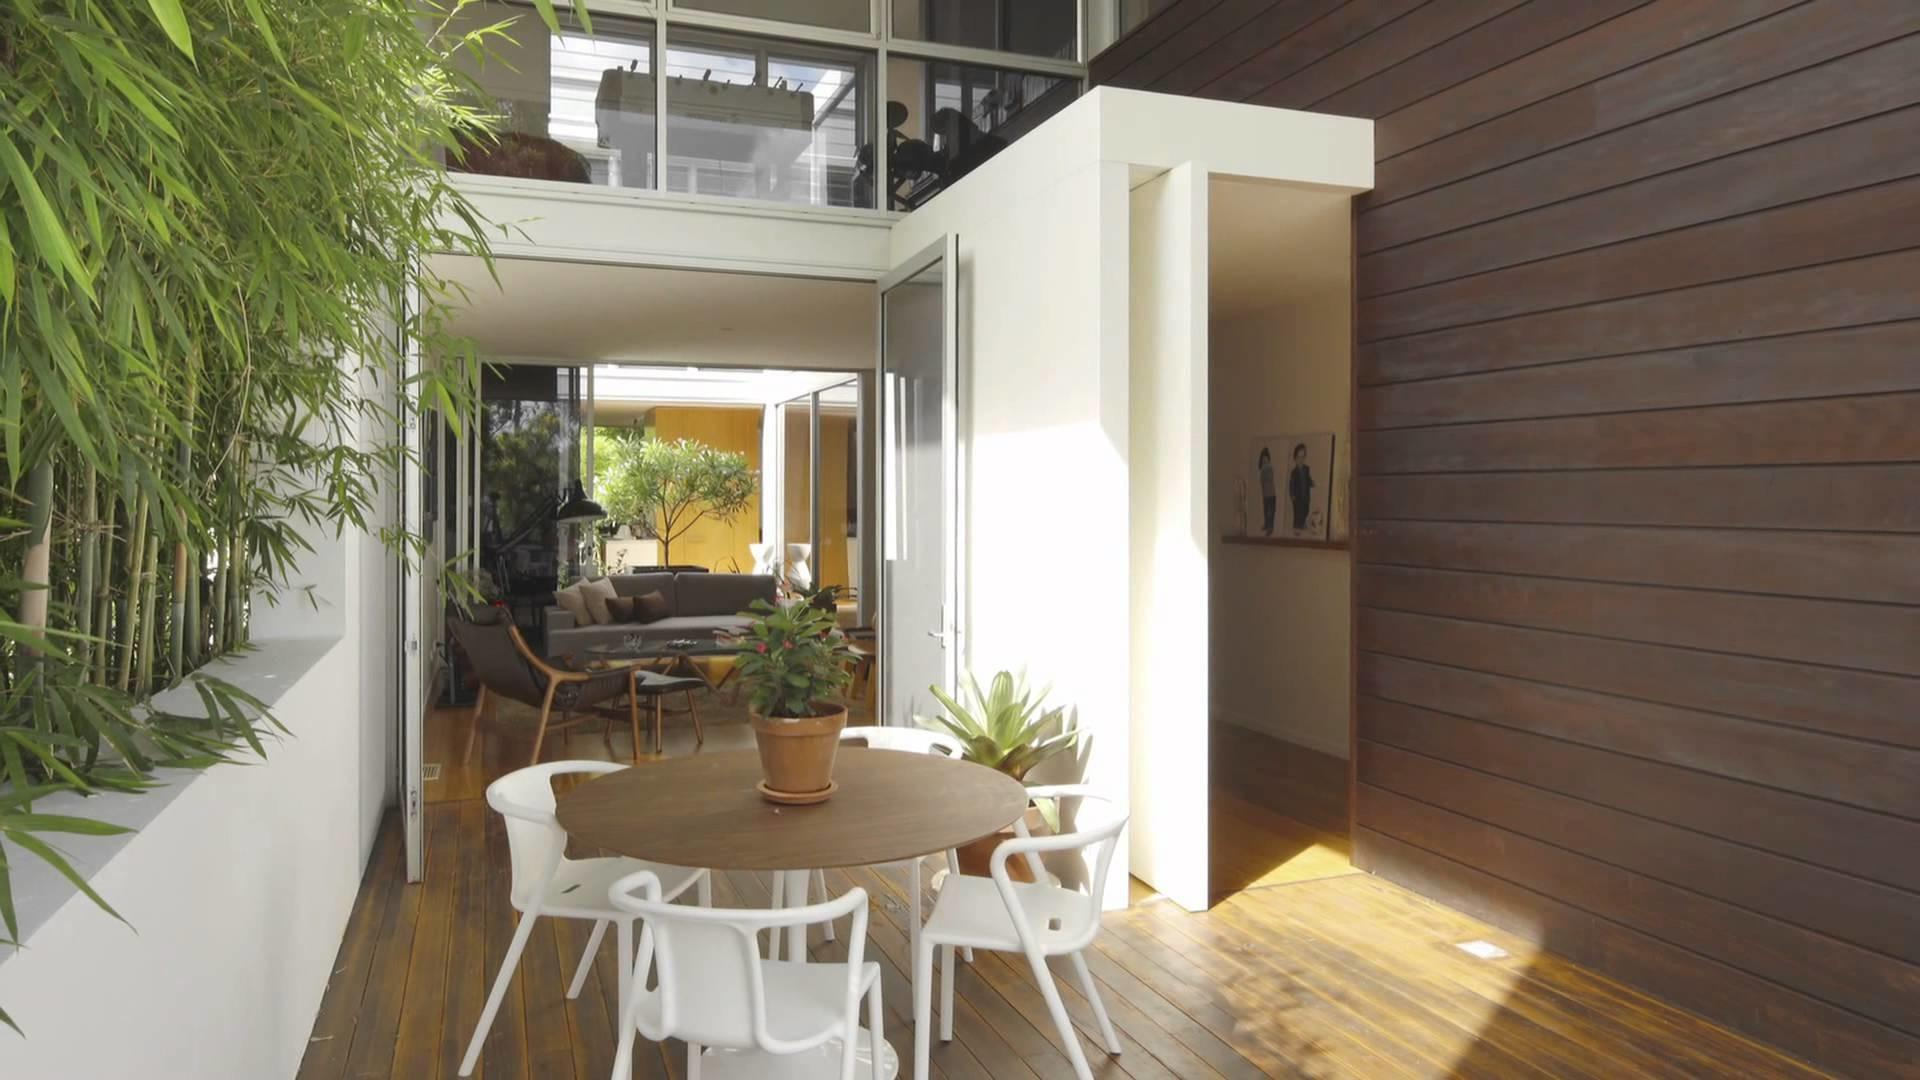 Queensland Home Formed Around Central Courtyard Opens